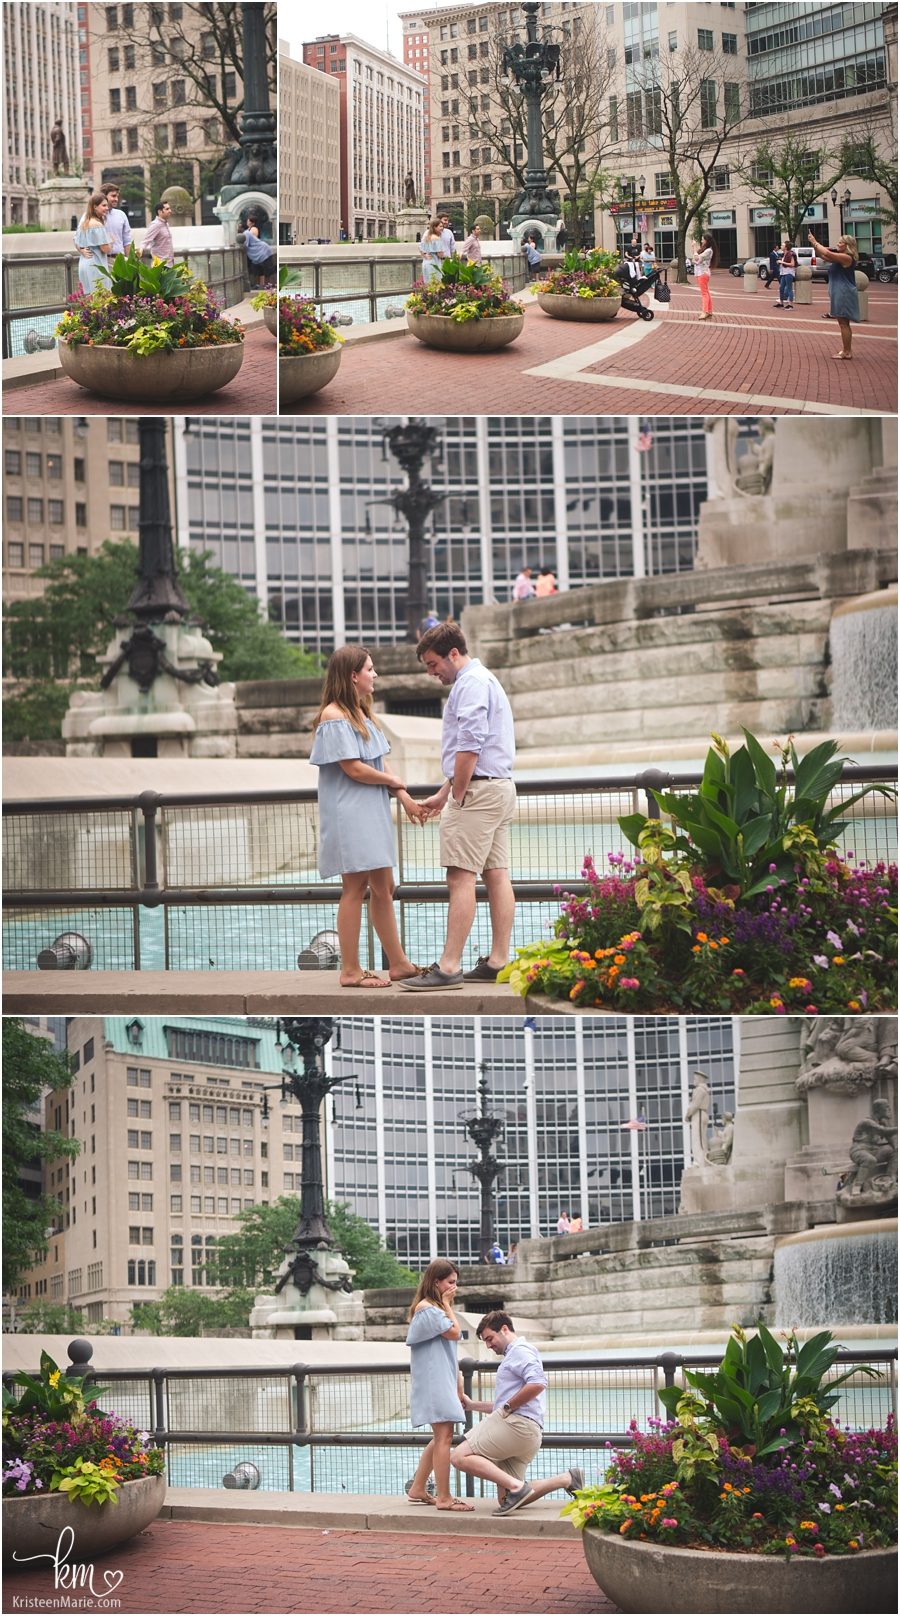 will you marry me?! Hire a proposal photographer. Your fiance will love it!